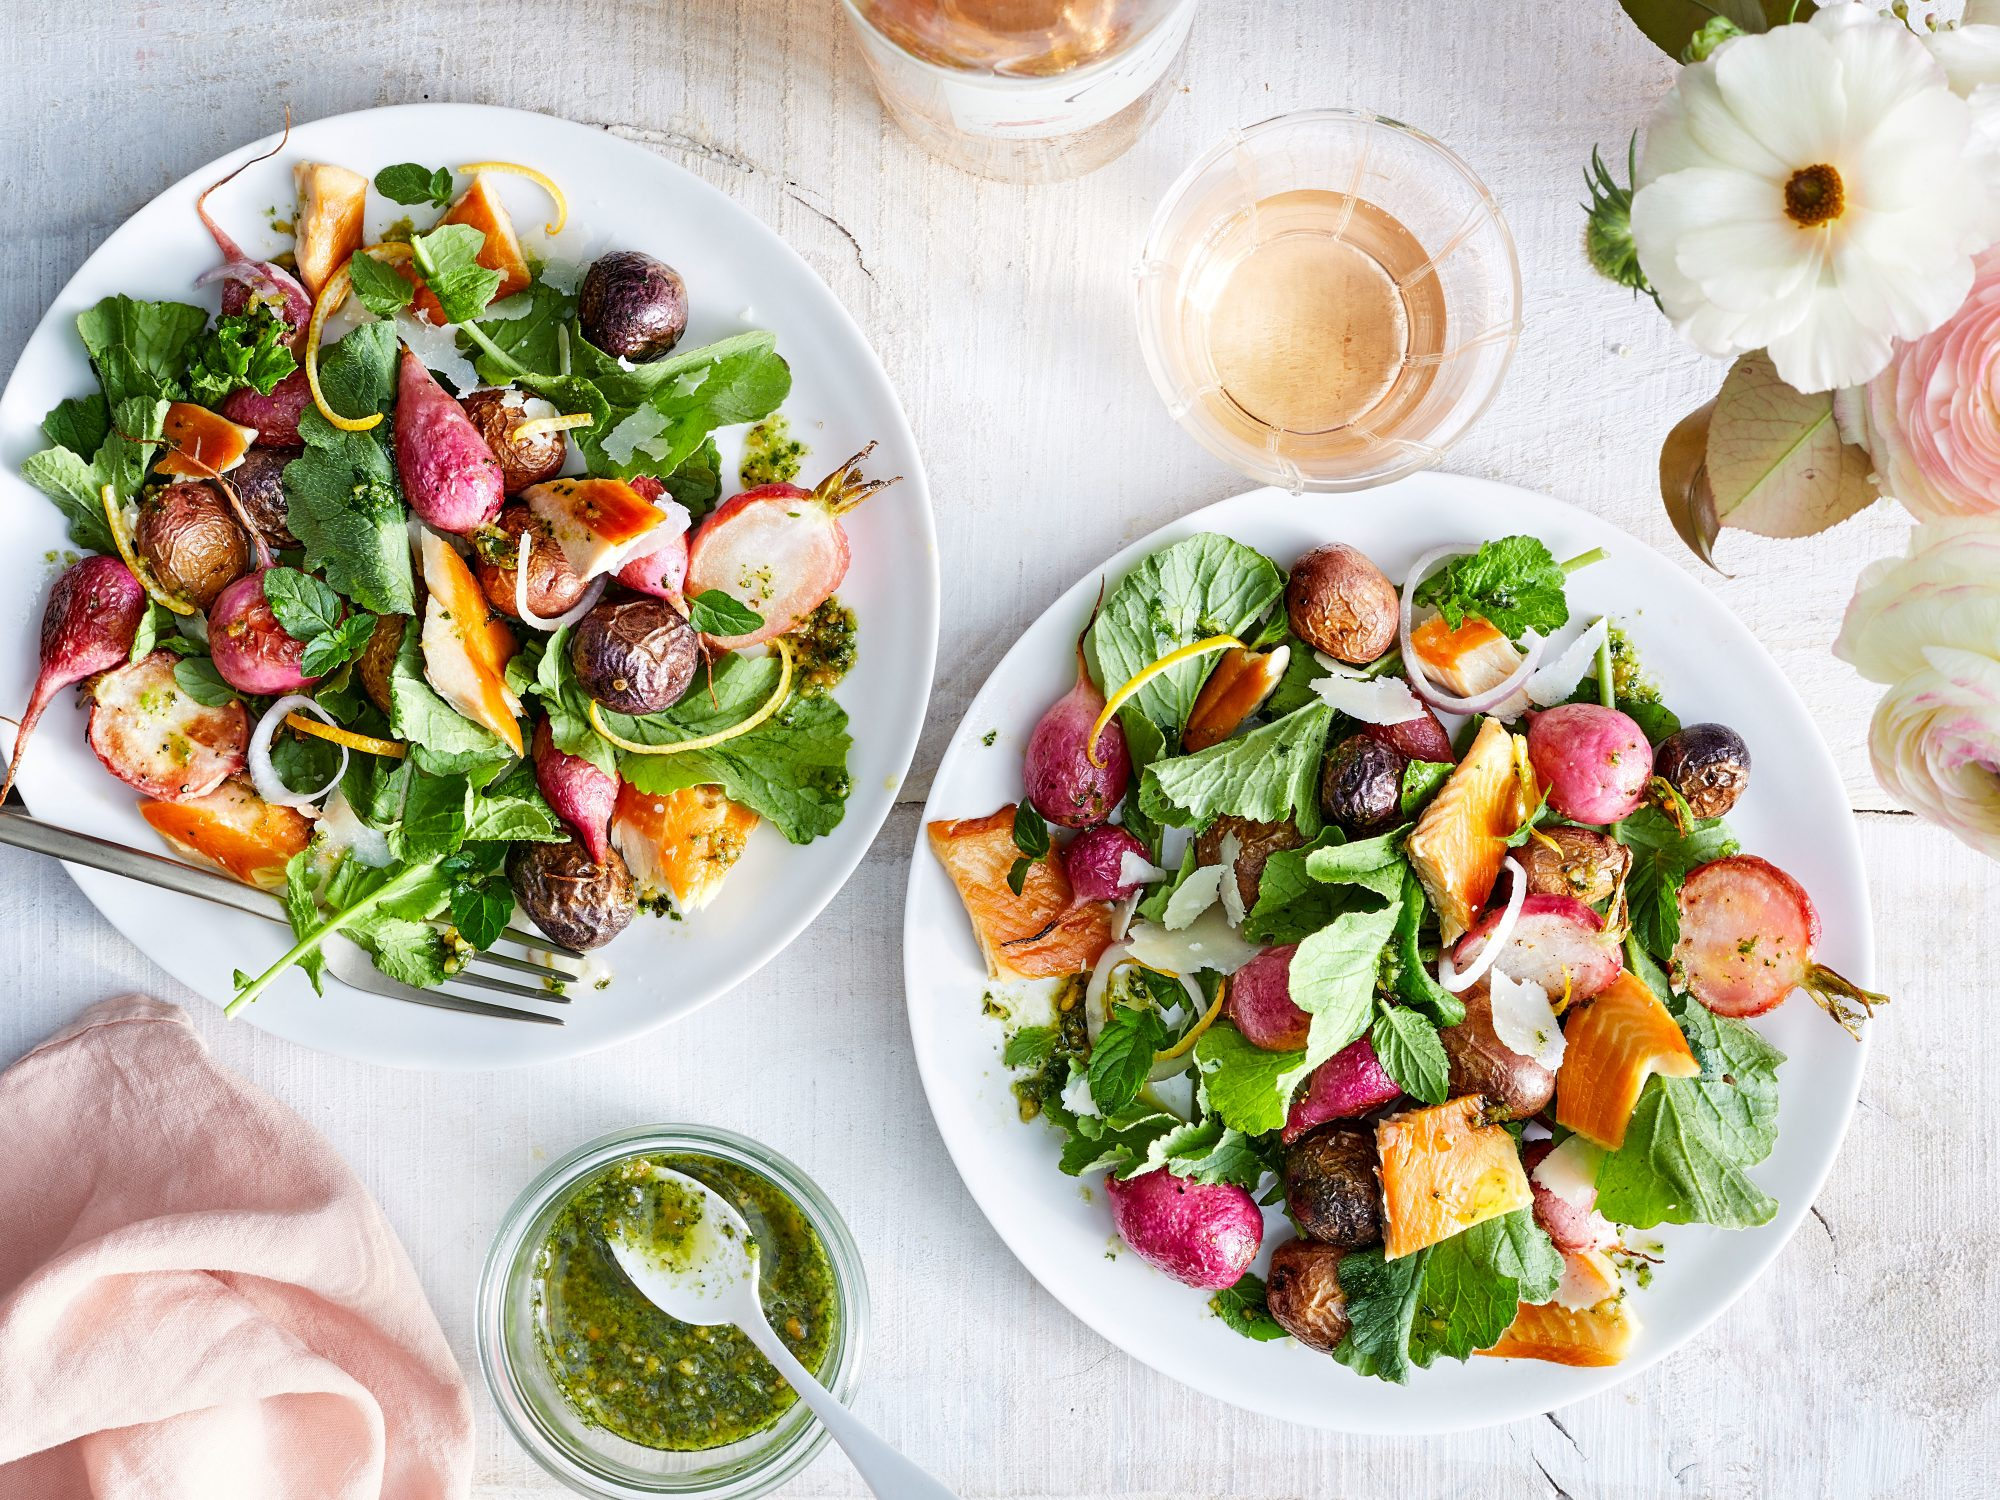 Warm Radish-and-Potato Salad with Smoked Trout and Radish Leaf-and-Mint Pesto